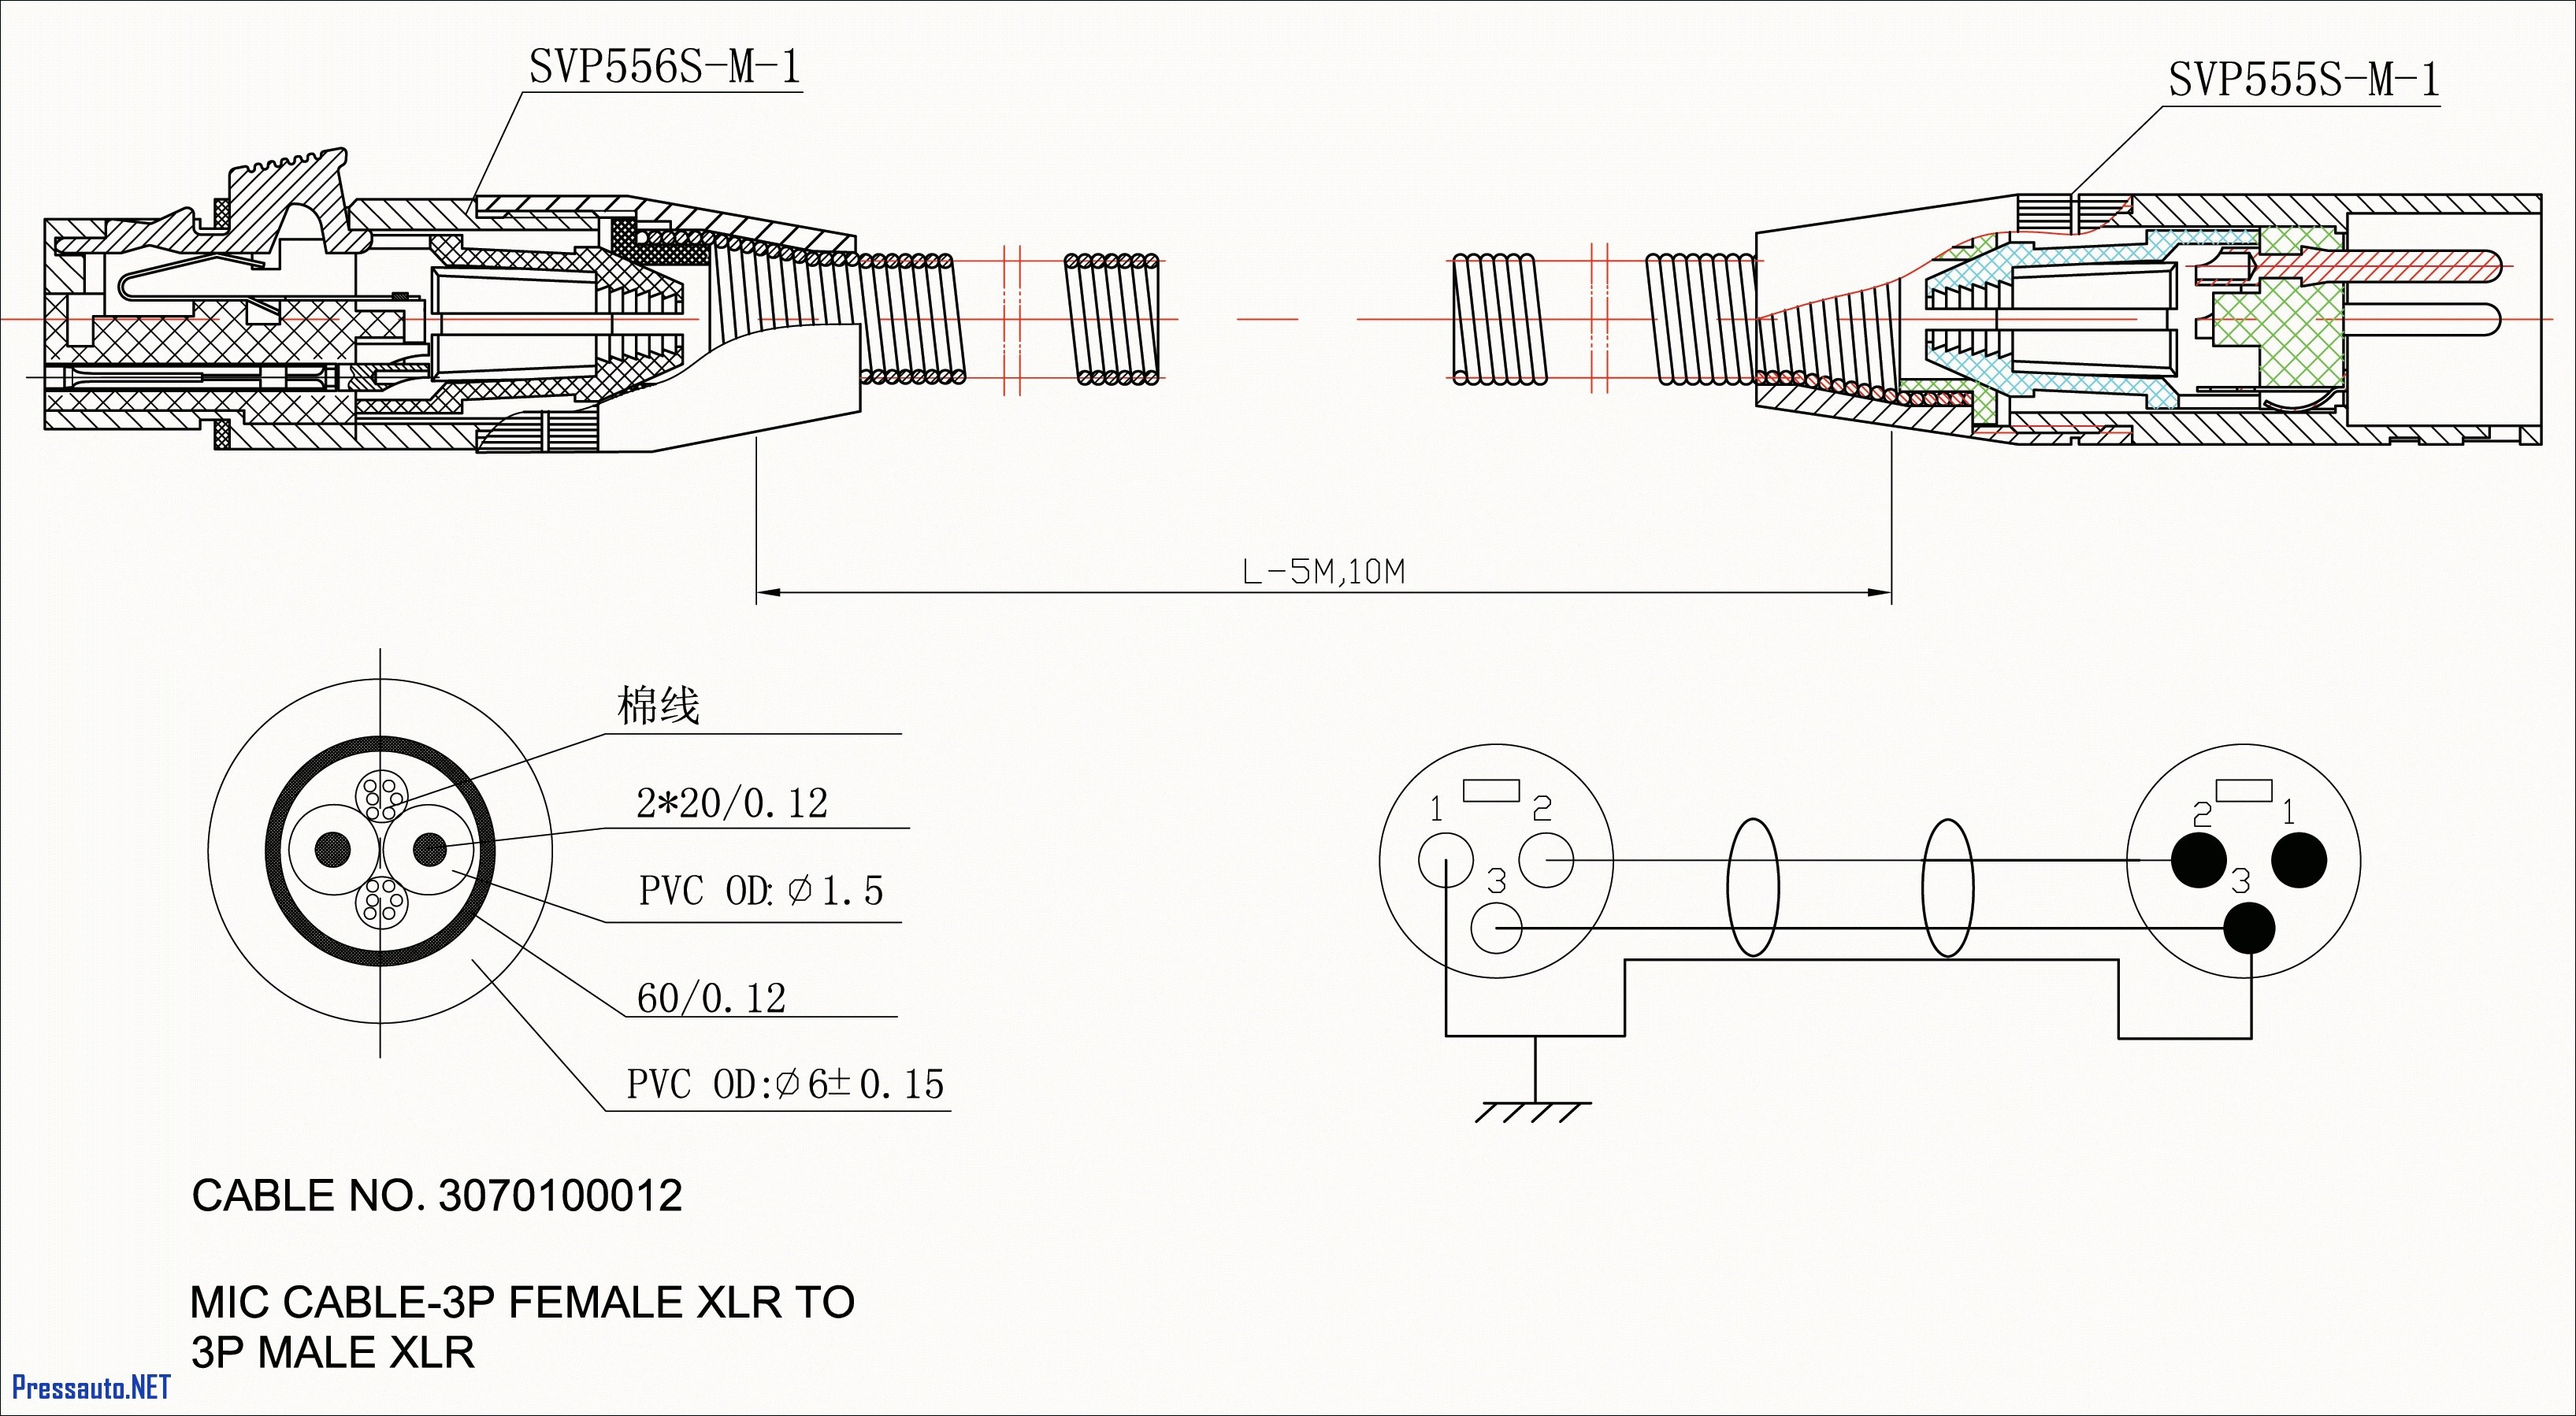 2003 ford Explorer 4 0 Engine Diagram 2005 ford Explorer Electrical Wiring Diagrams Detailed Schematic Of 2003 ford Explorer 4 0 Engine Diagram